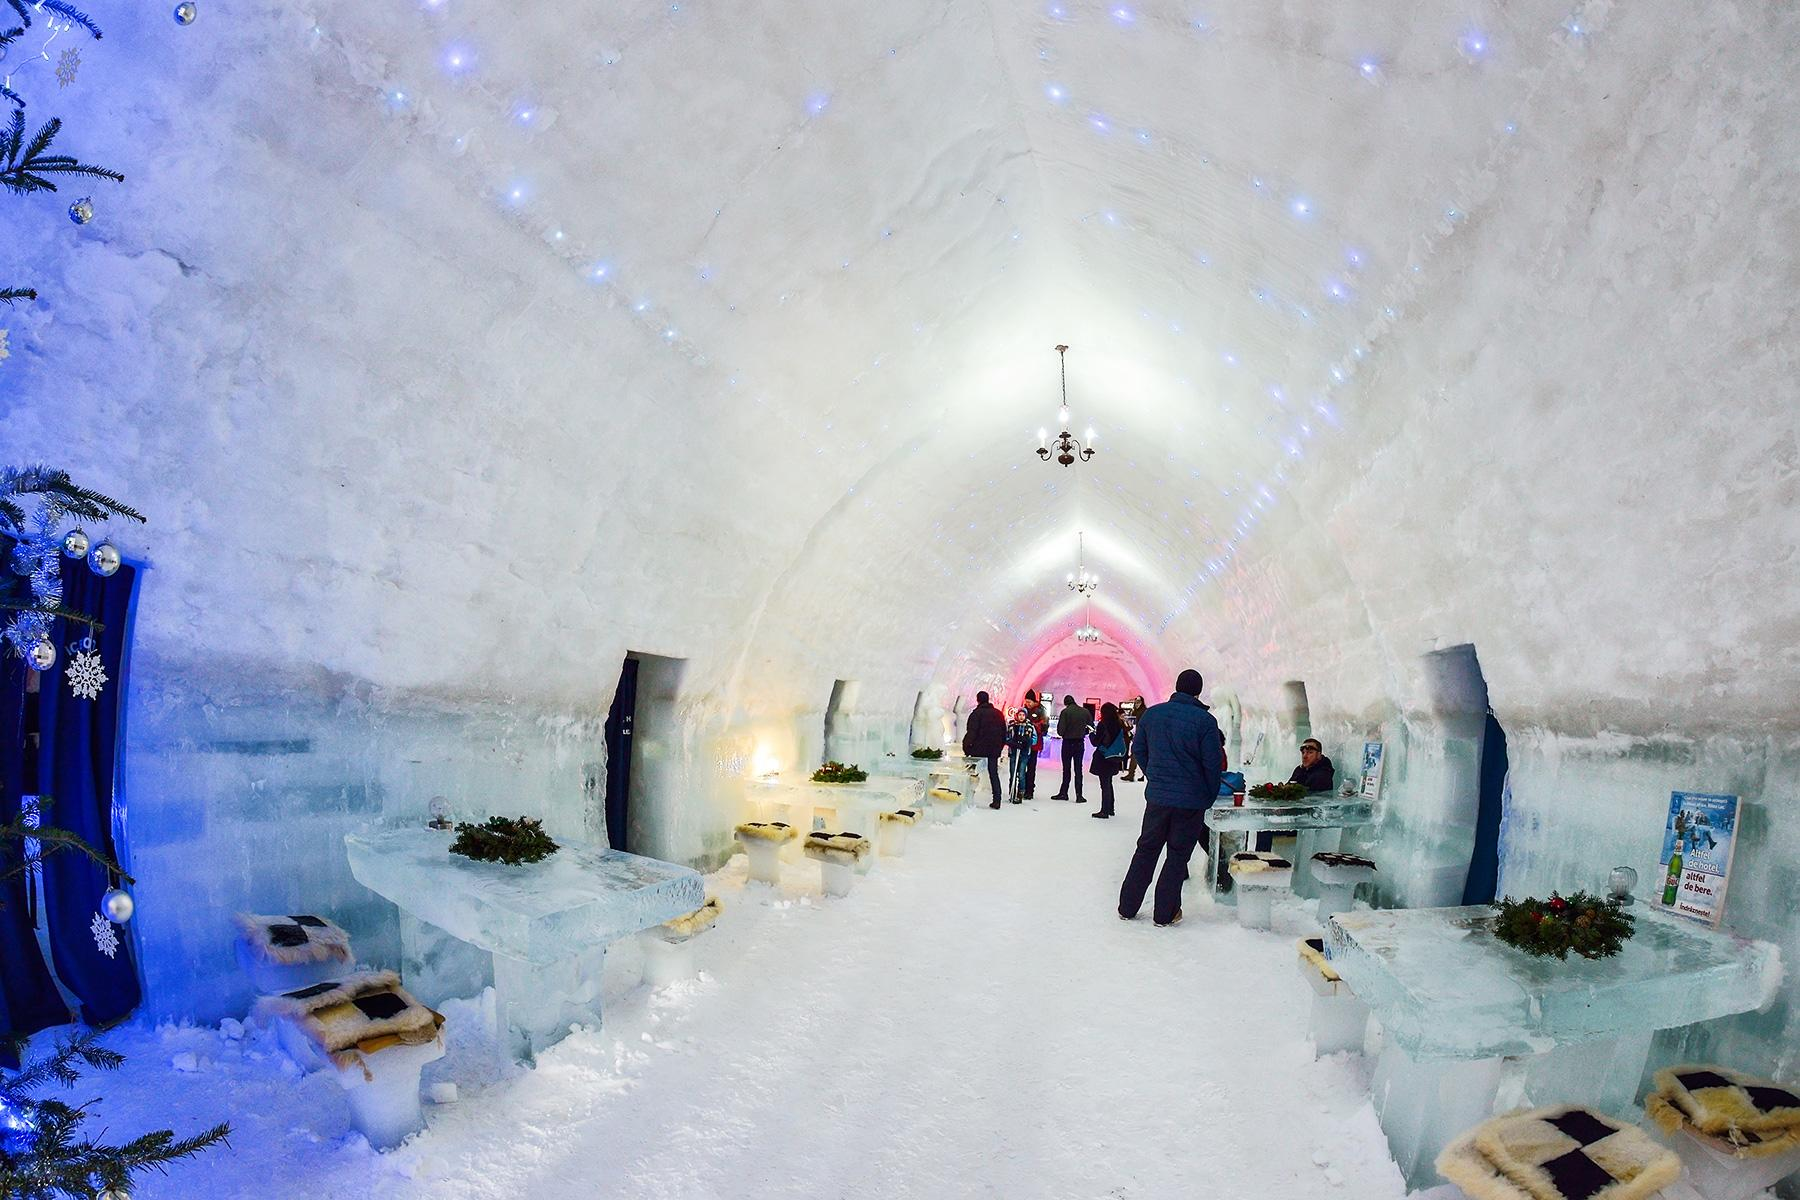 Worlds 10 Coolest Ice Hotels Fodors Travel Guide